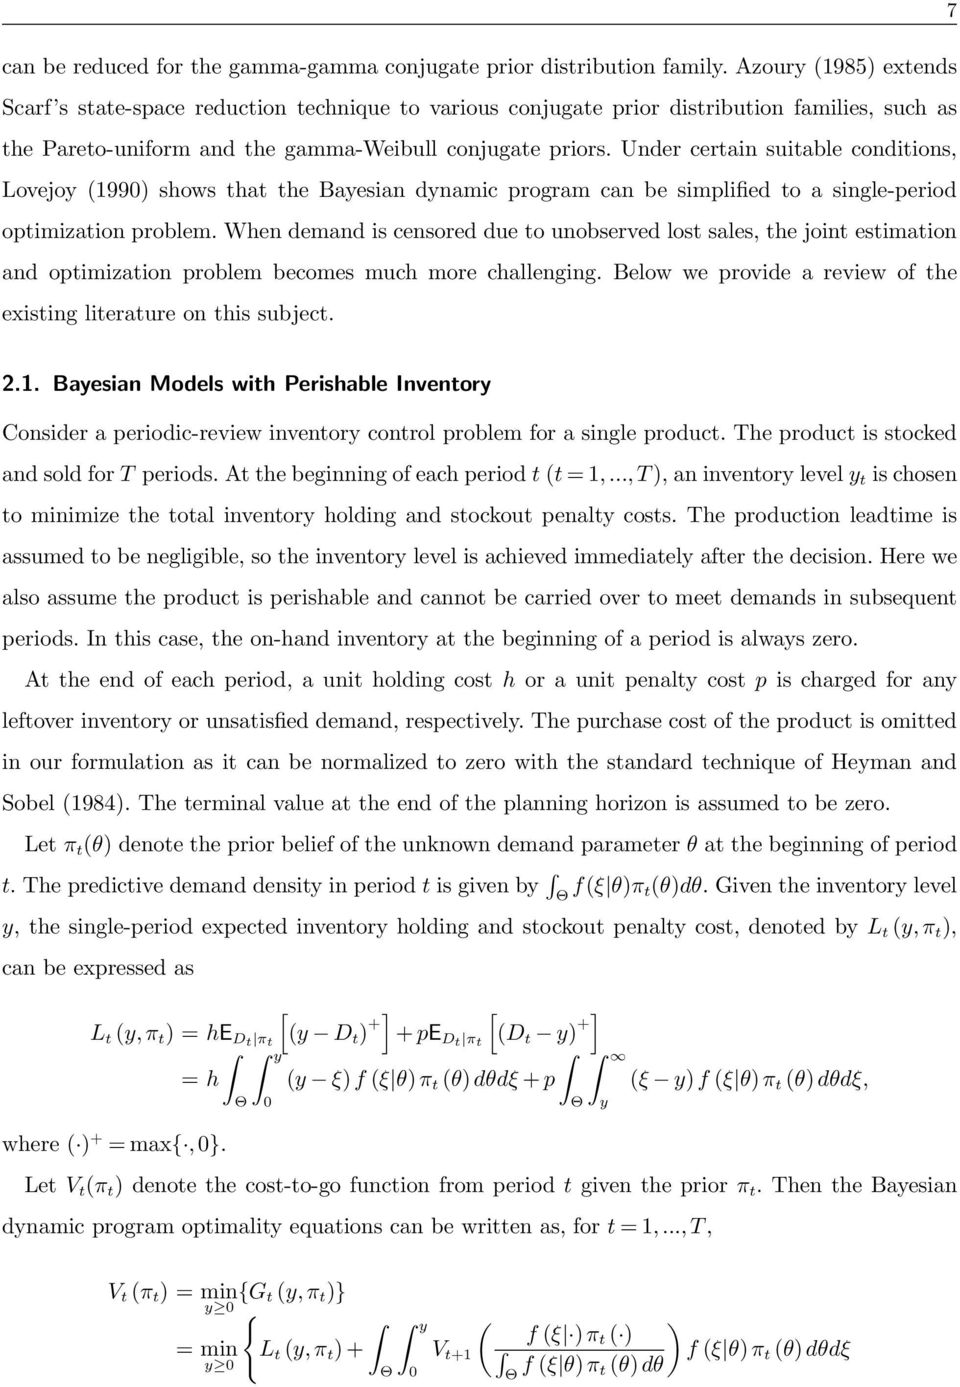 Under certain suitable conditions, Lovejoy (1990) shows that the Bayesian dynamic program can be simplified to a single-period optimization problem.